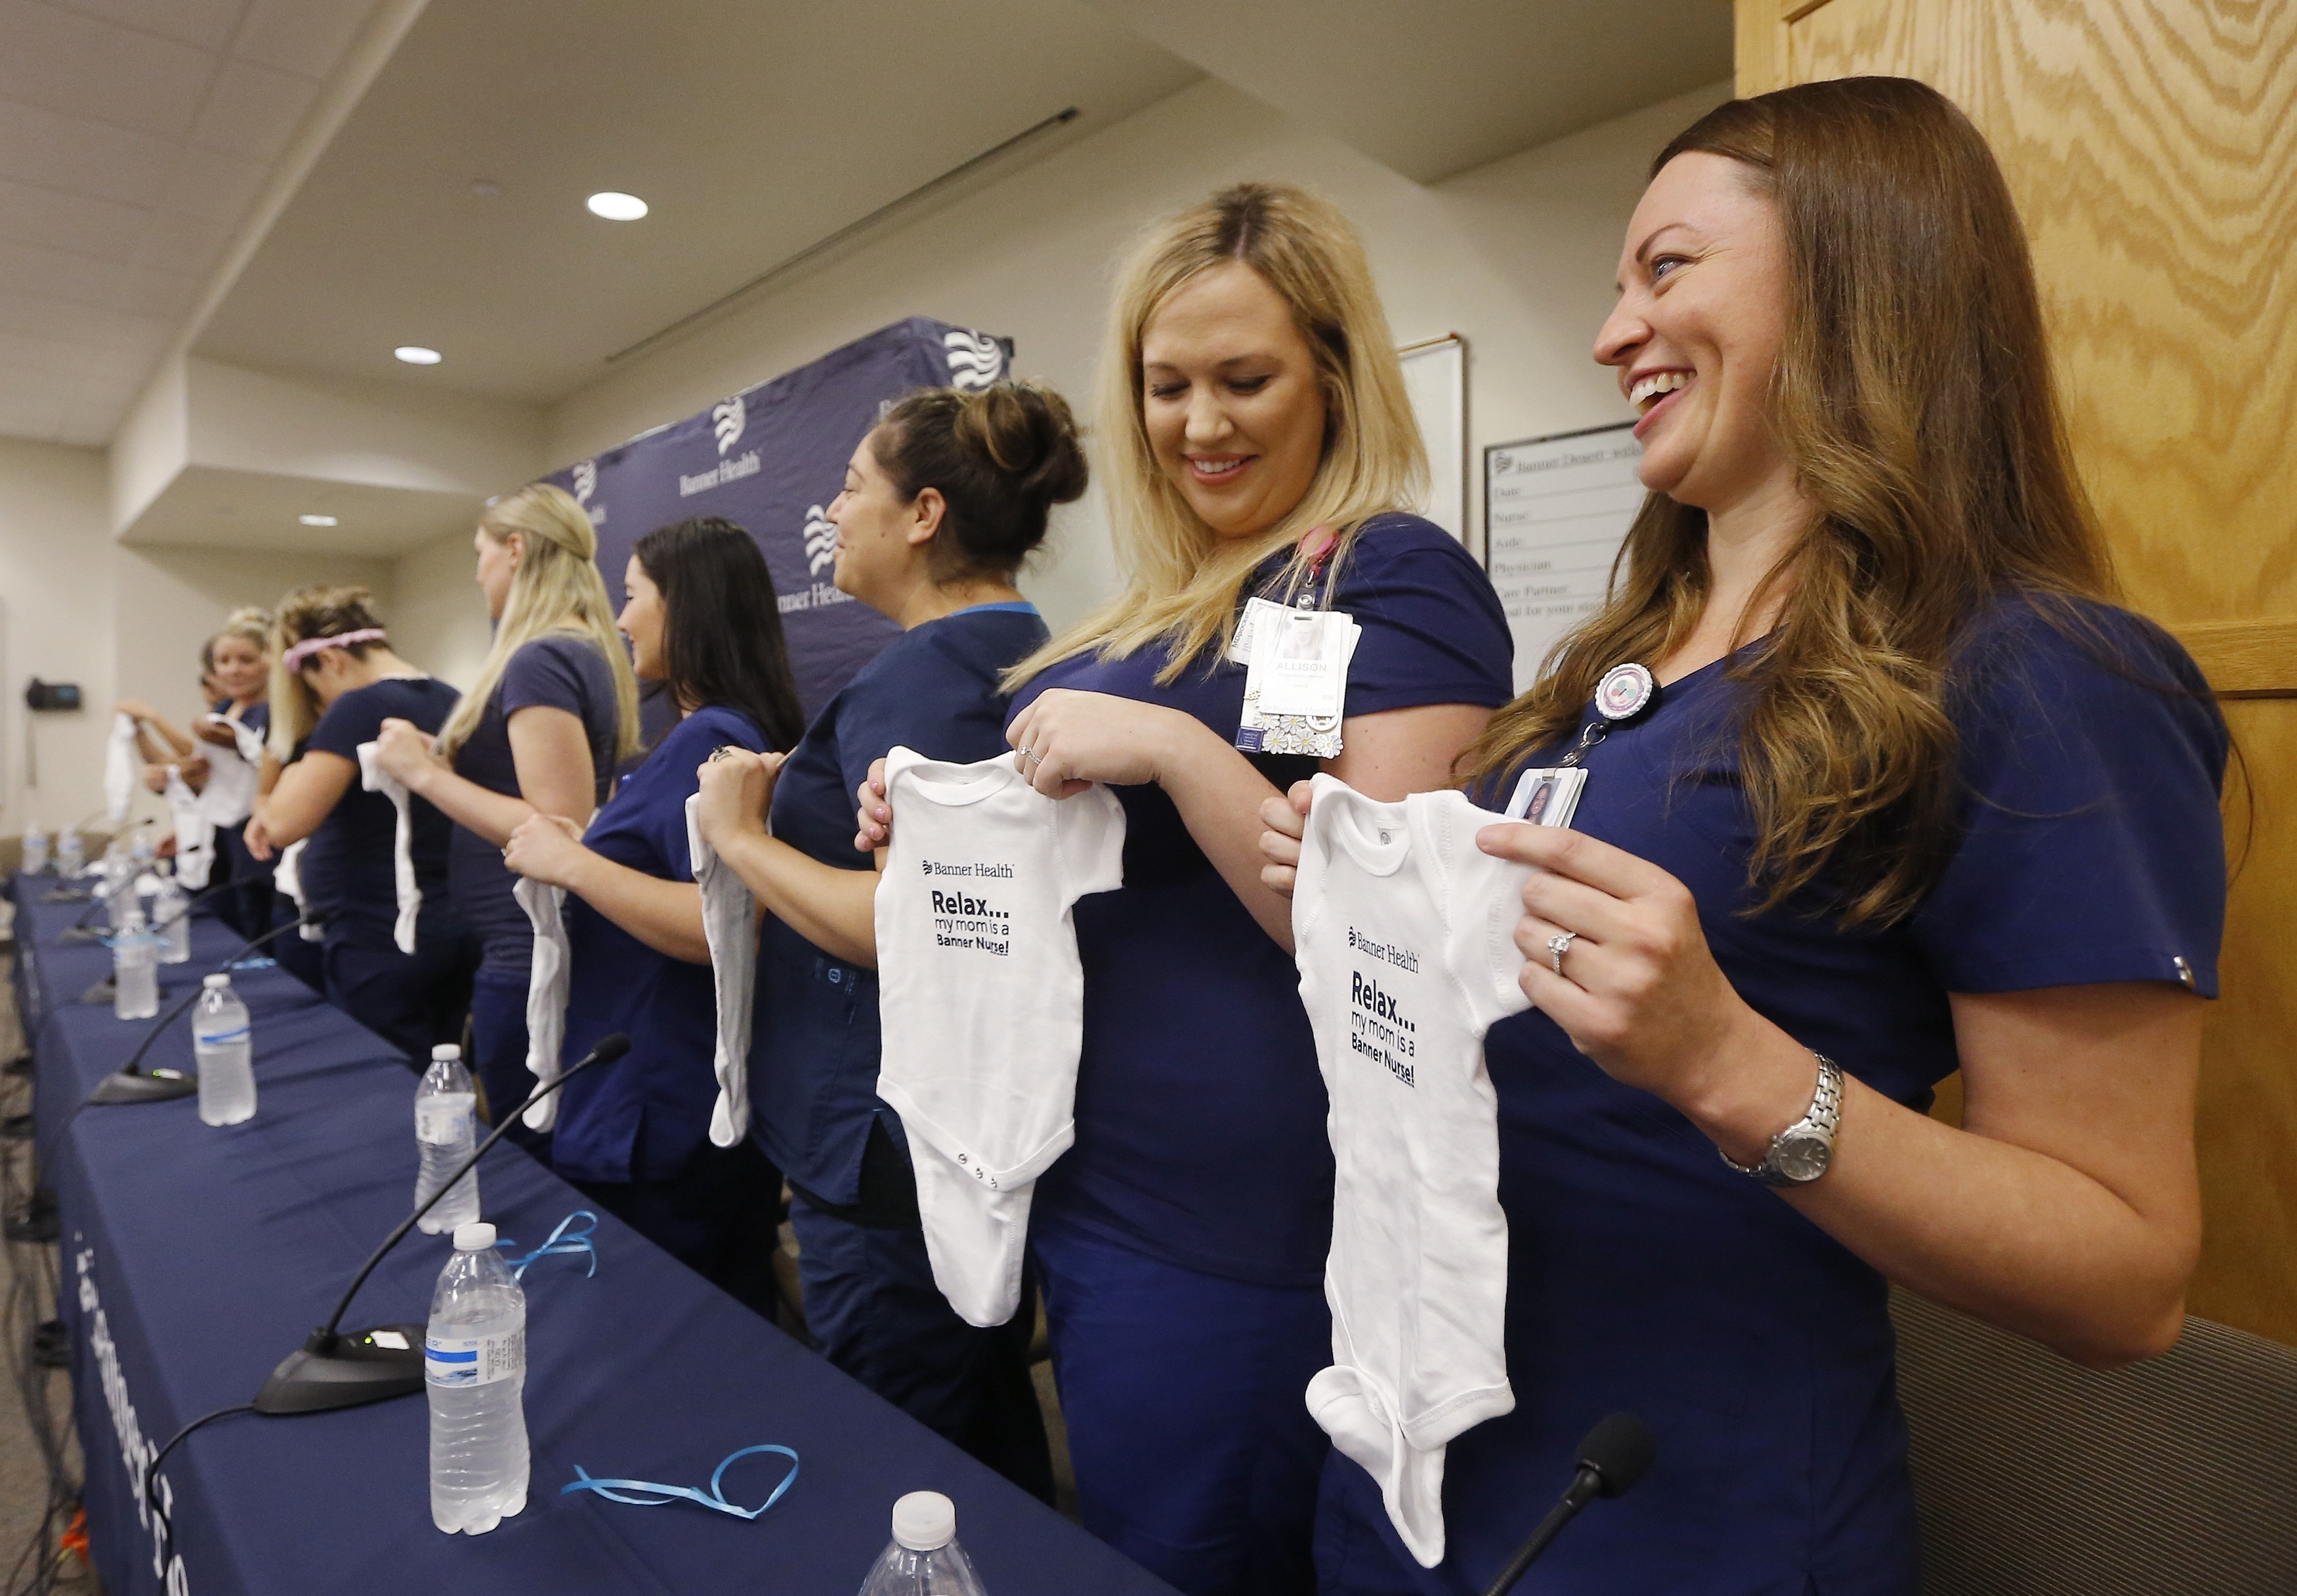 Baby Boom Hits Arizona Hospital With 16 Nurses Who Are Pregnant